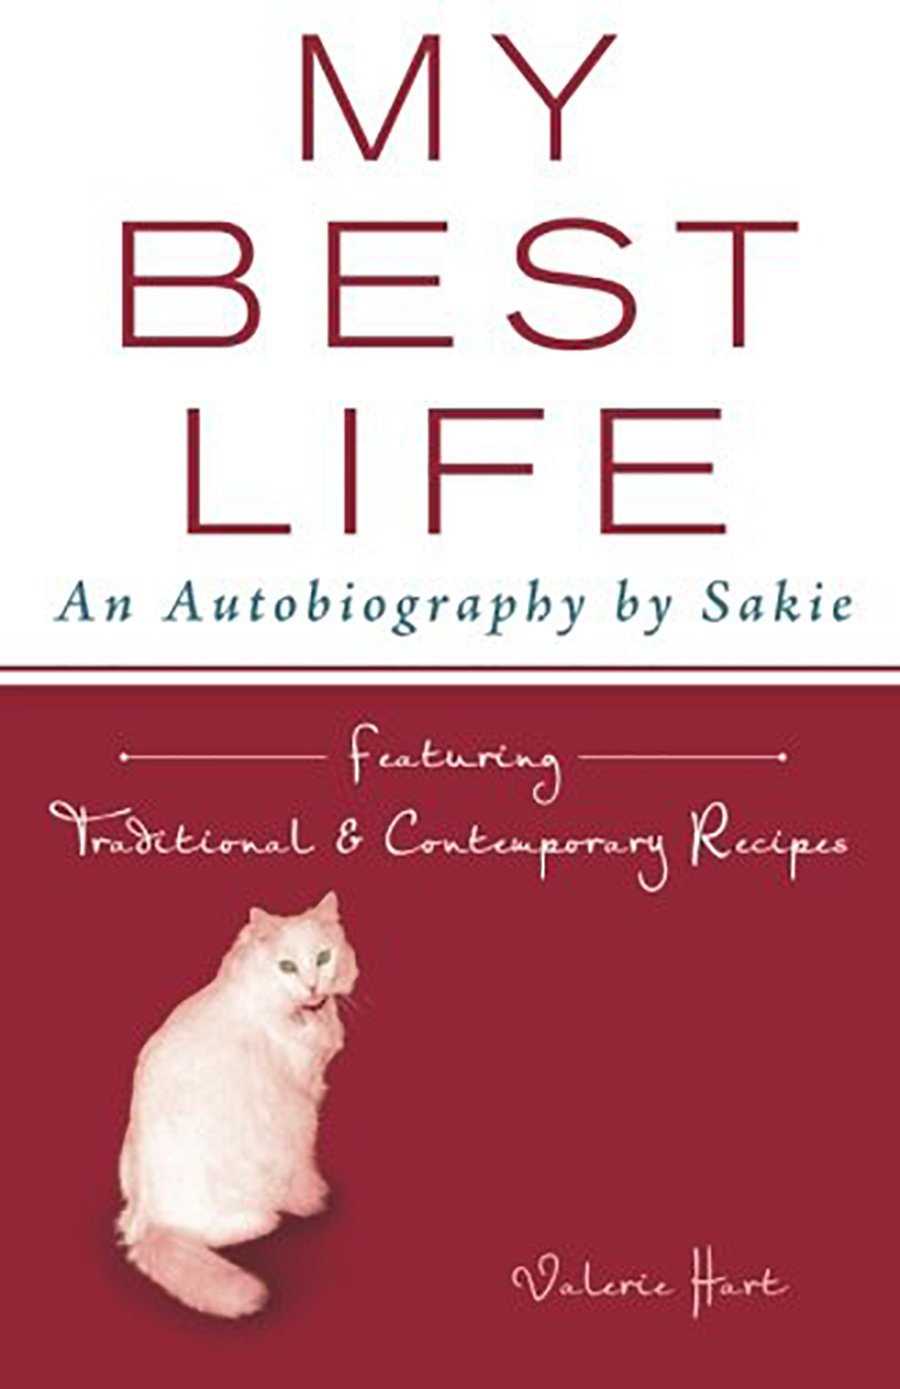 My Best Life: An Autobiography by Sakie PDF